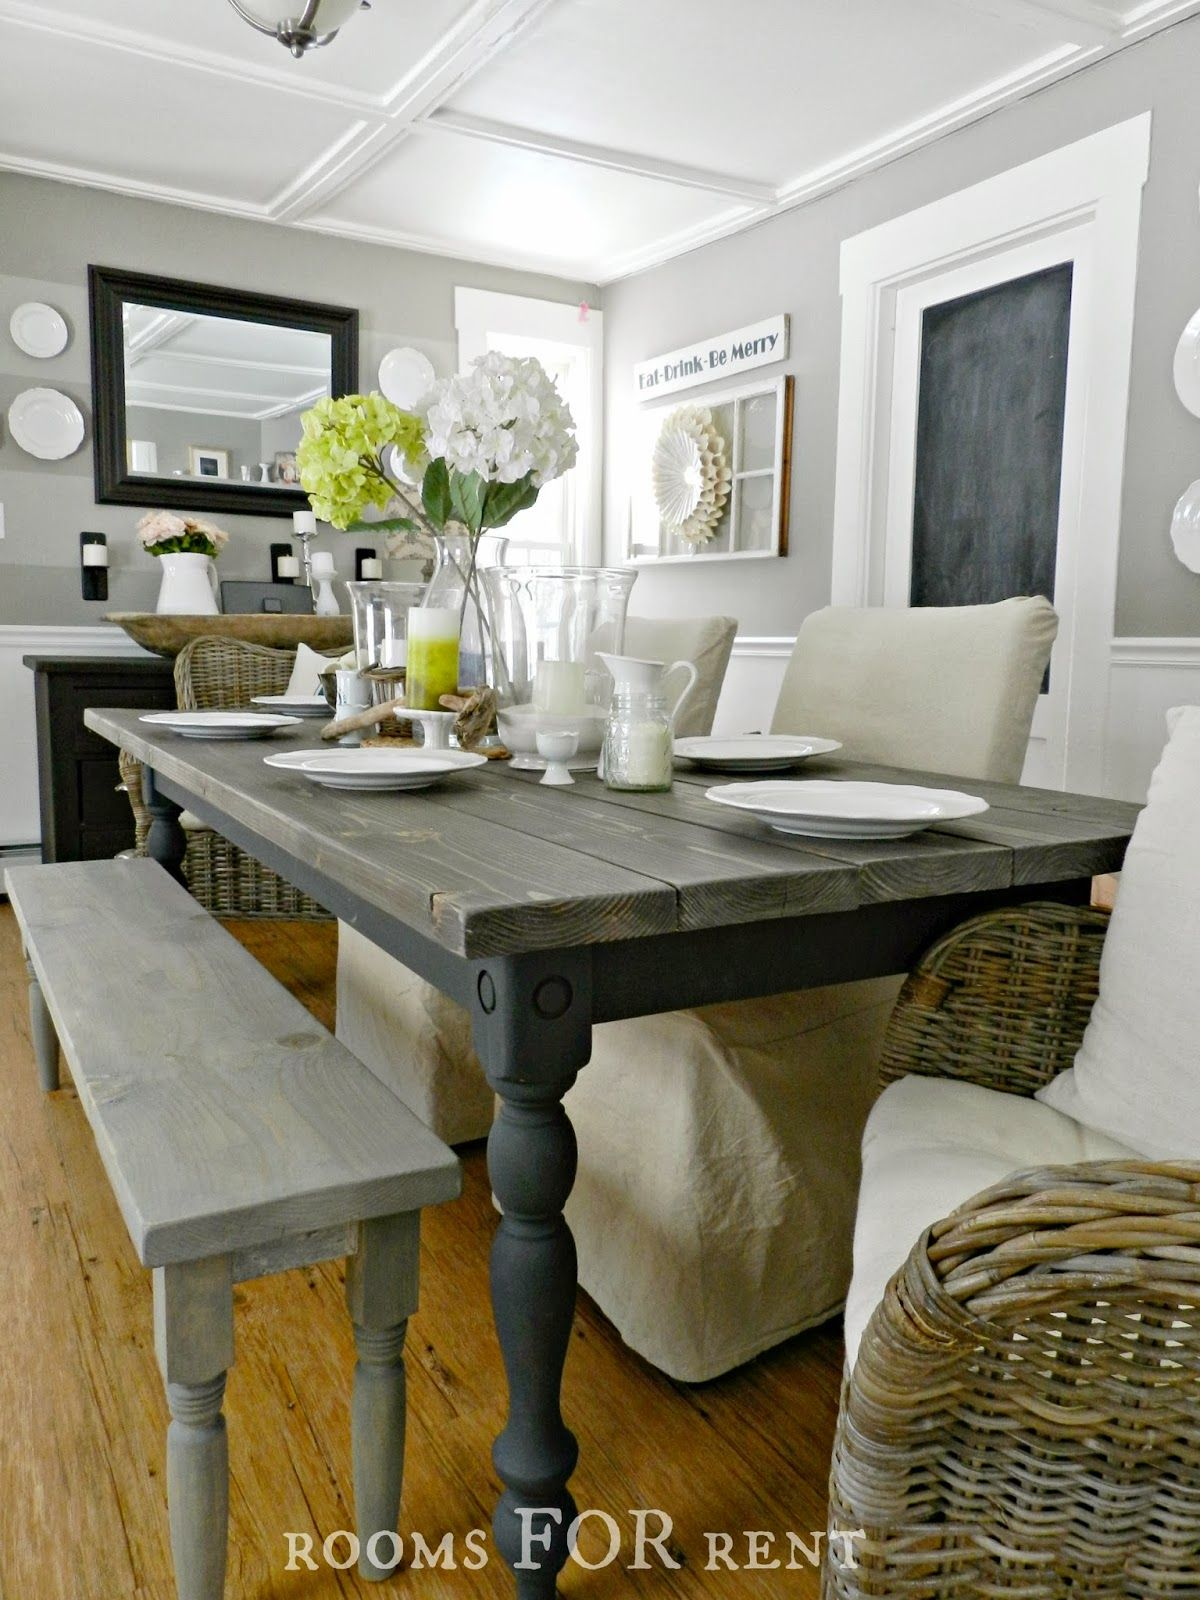 Rooms For Rent Our New Farmhouse Dining Table